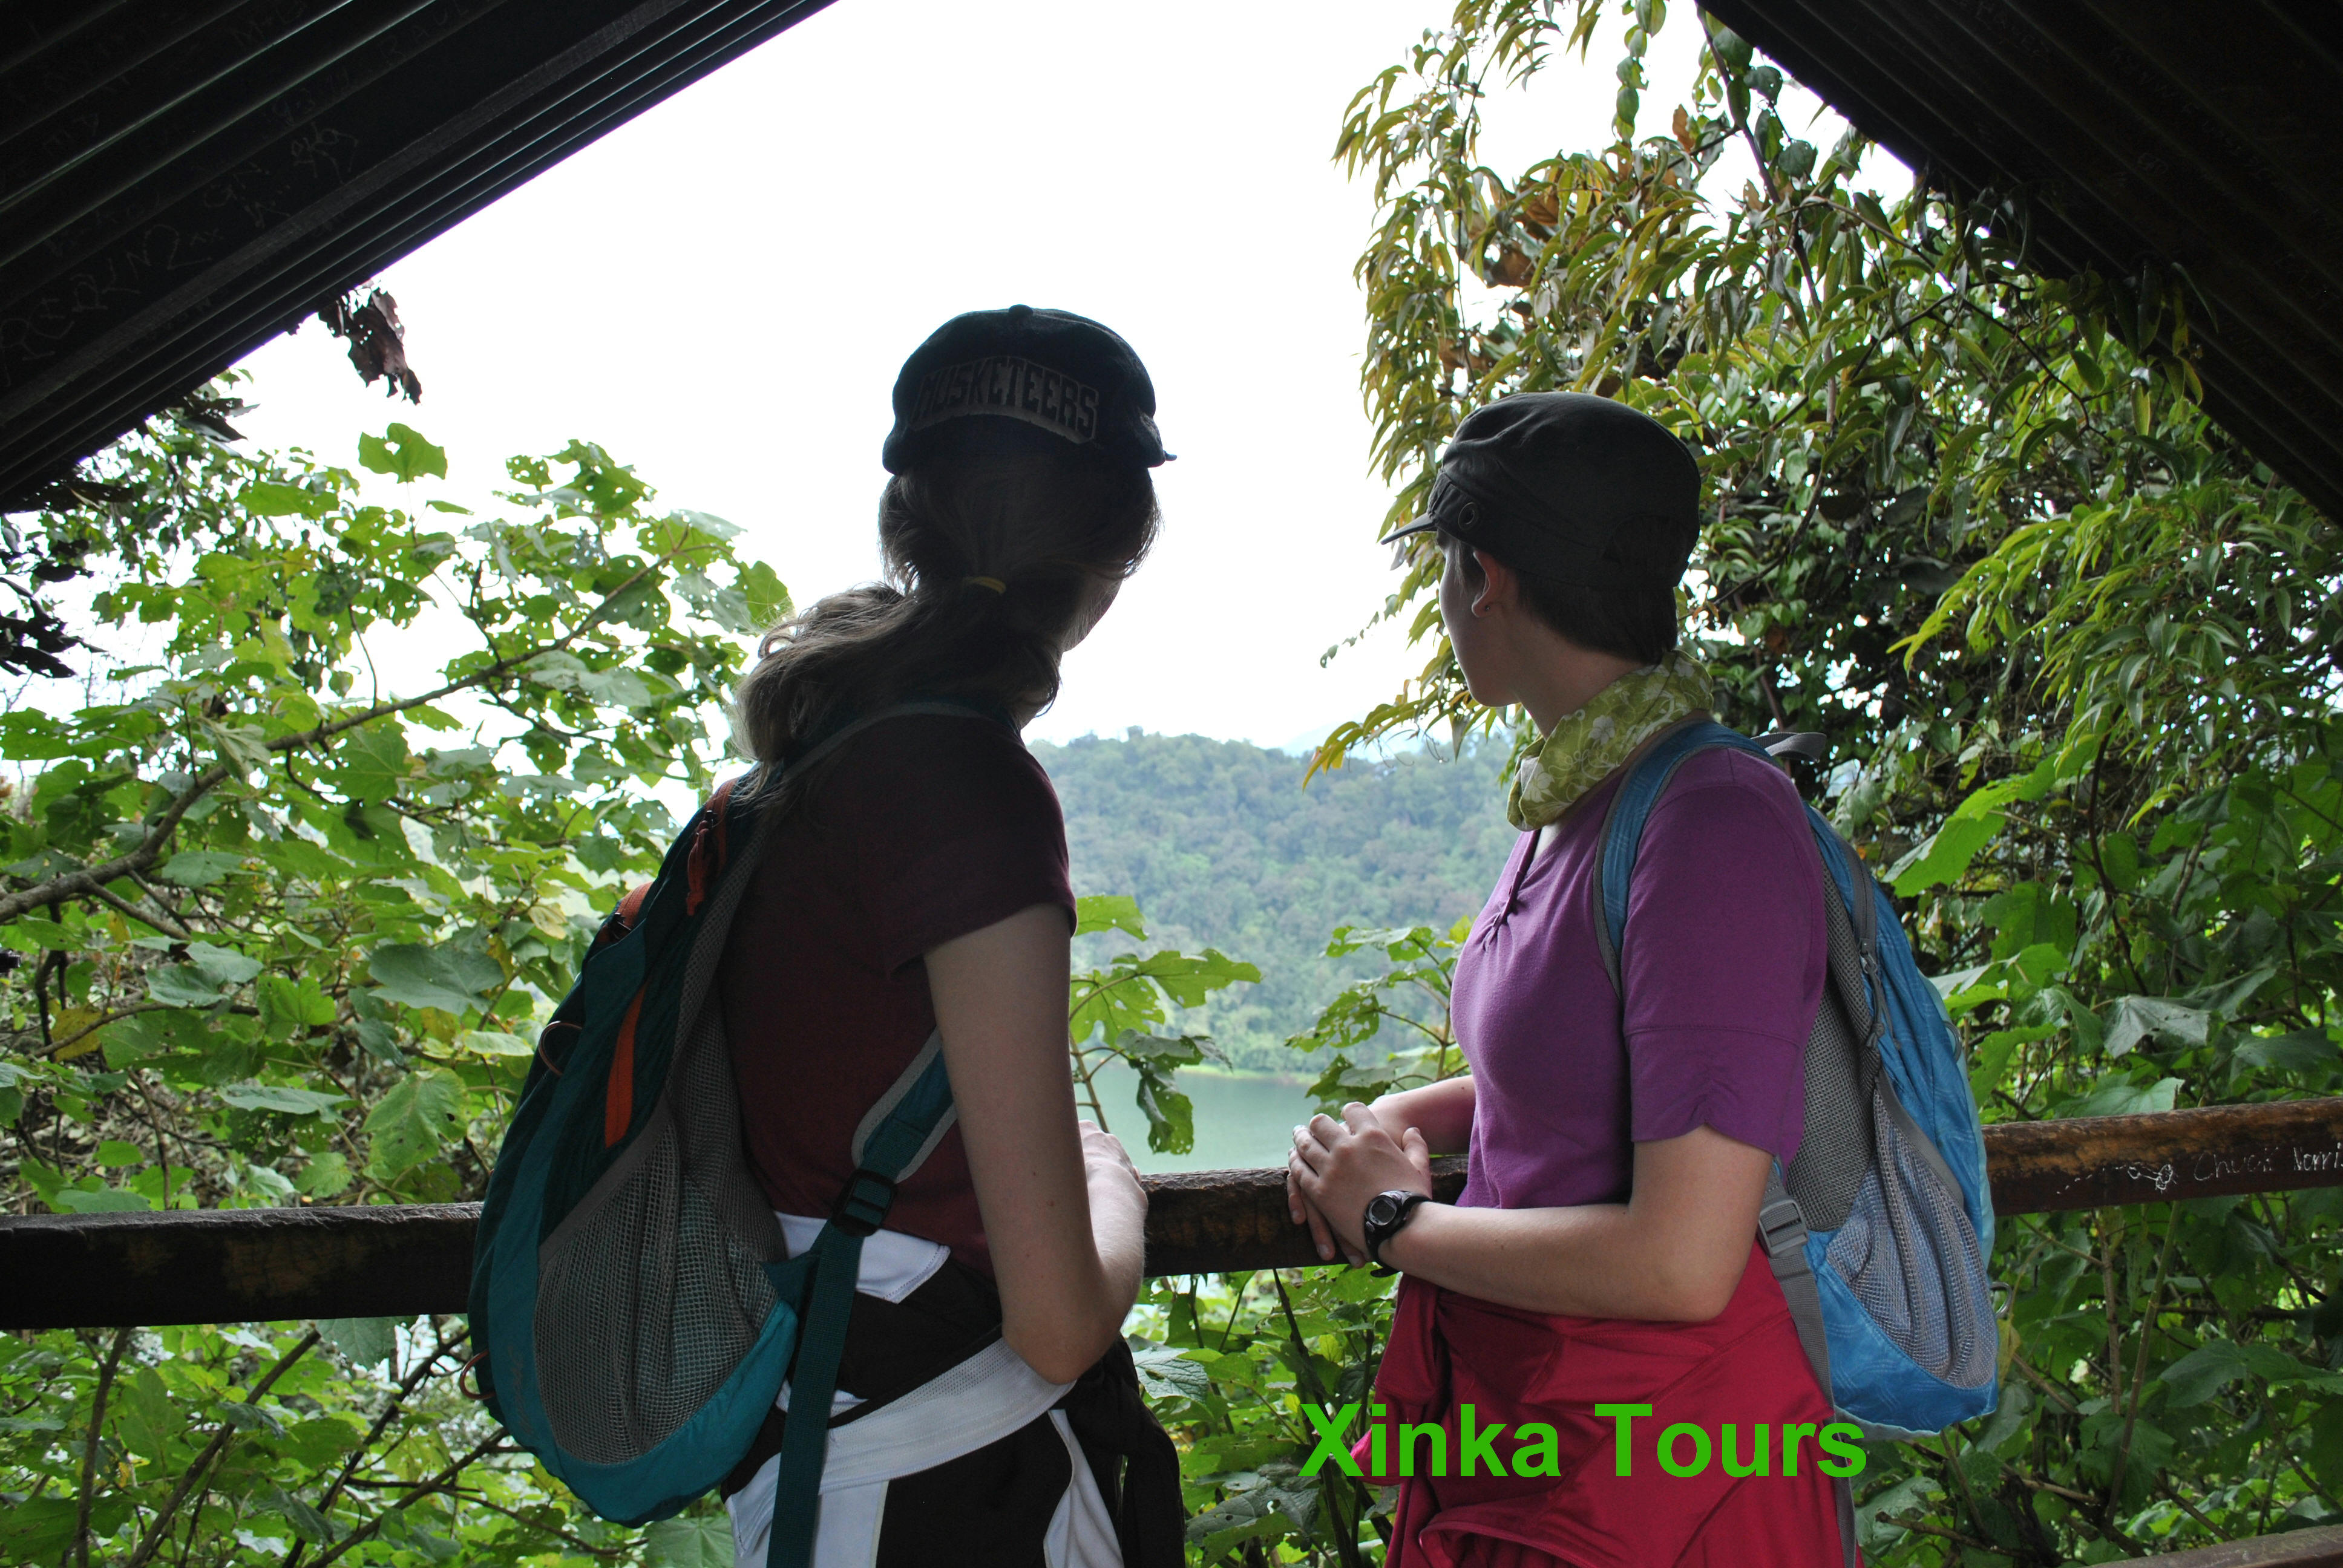 Relax and get new energy participating in our program of tours, hikes and excursions.